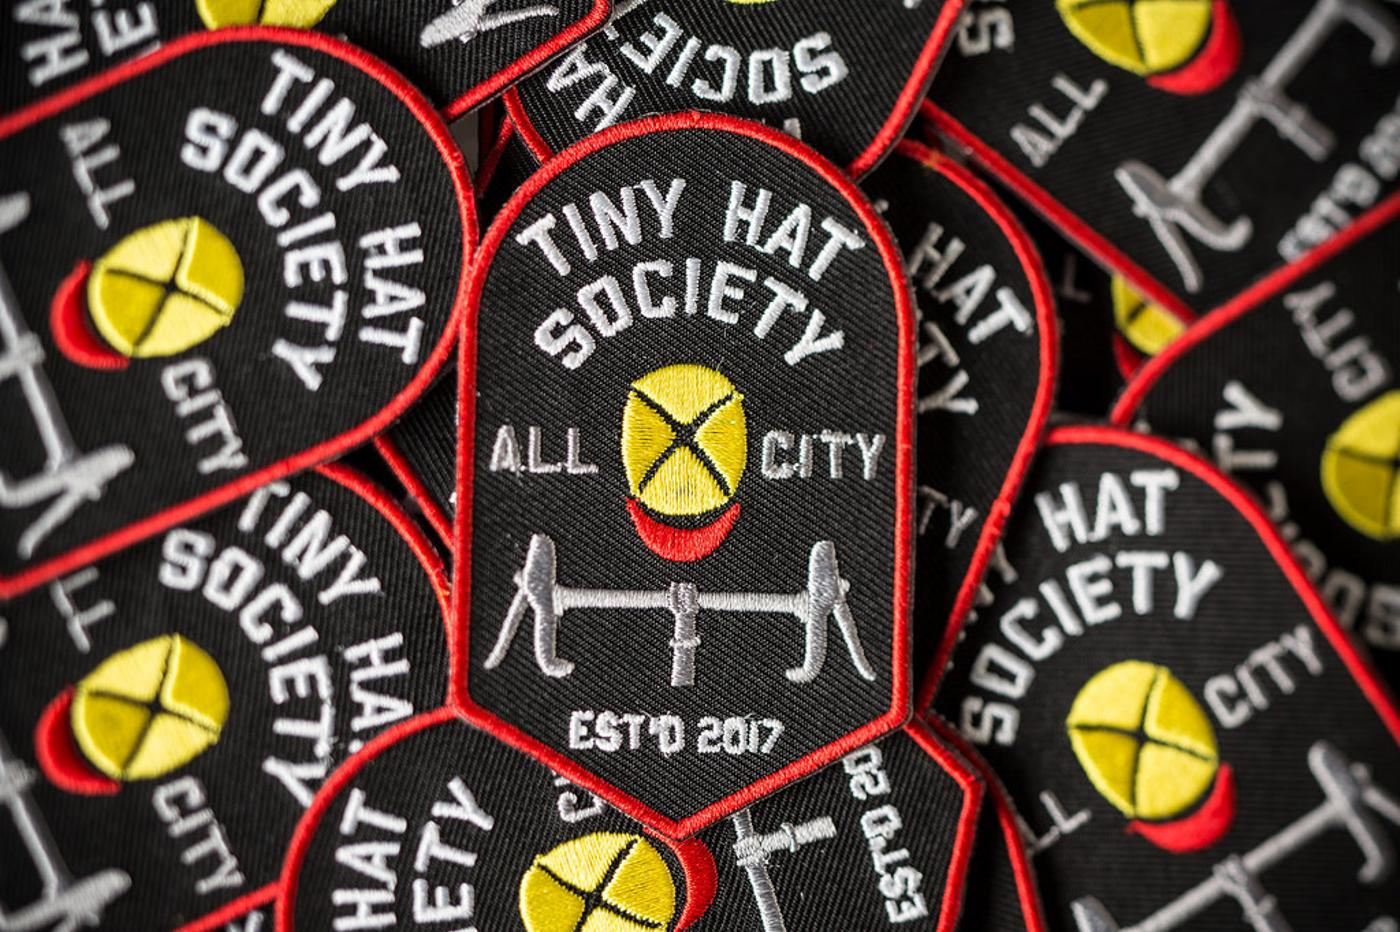 Free Patches for the All-City Tiny Hat Society